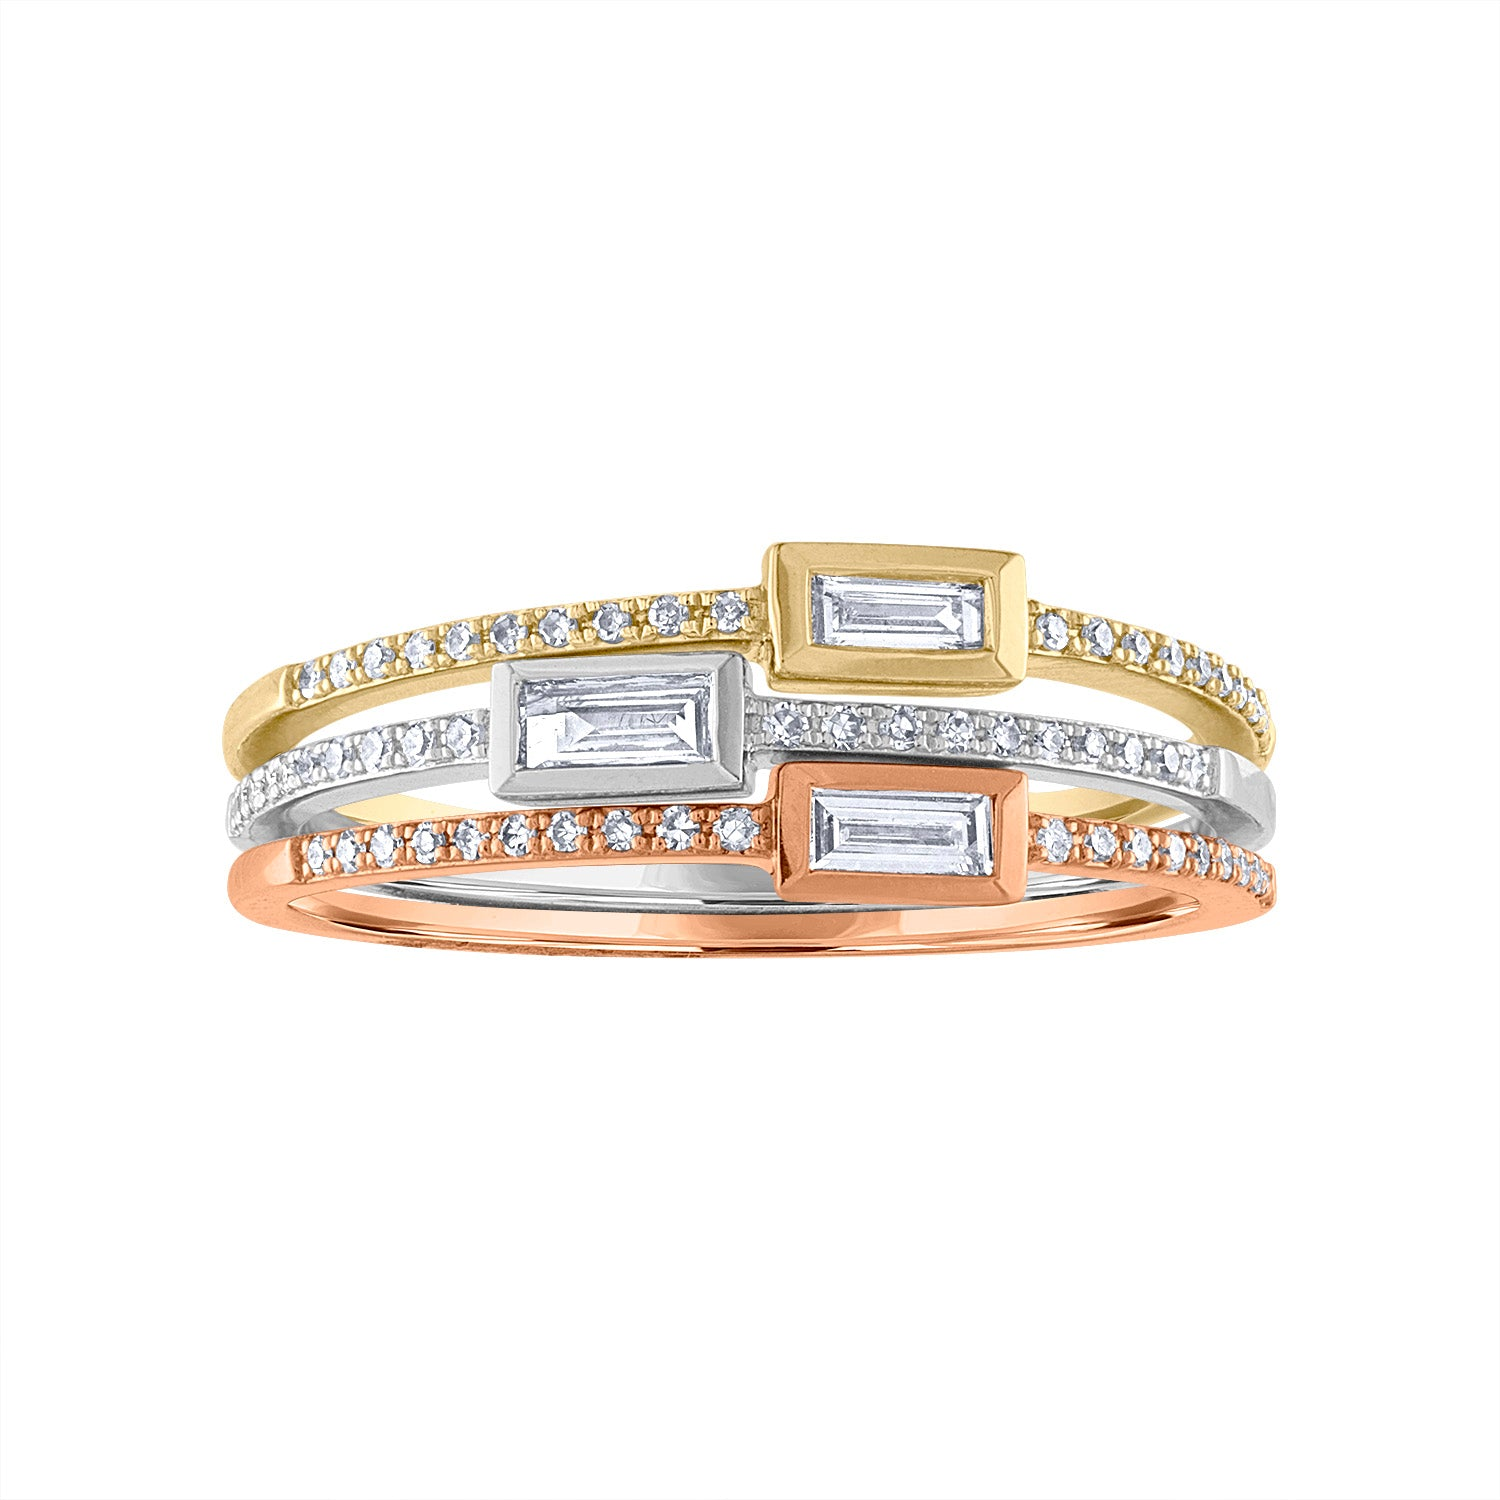 14KT GOLD SINGLE DIAMOND BAGUETTE RING